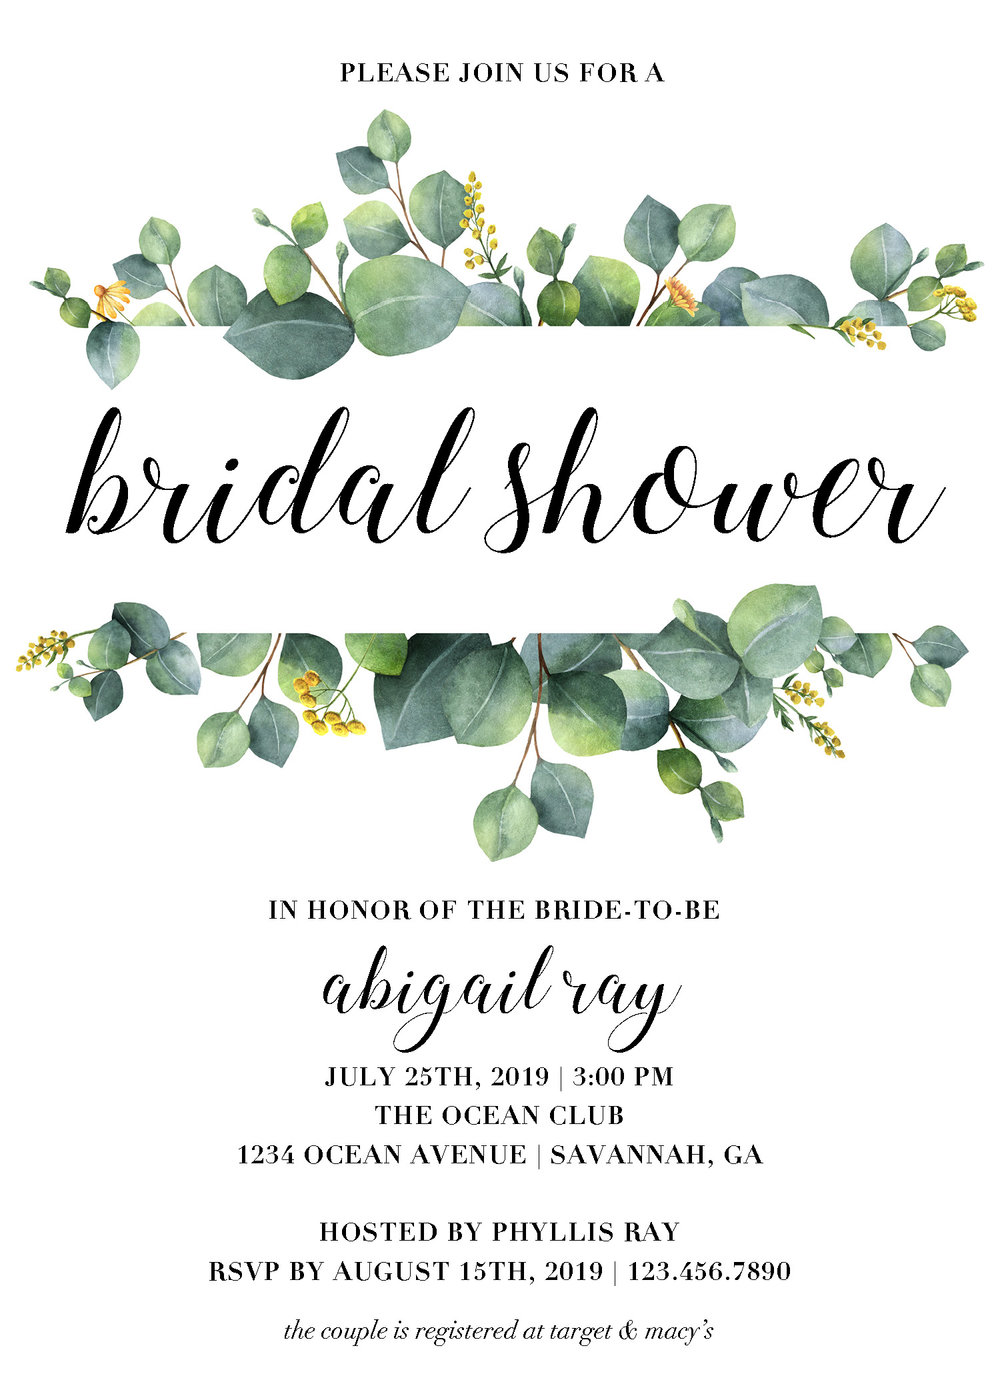 BridalShower_Ecul.jpg